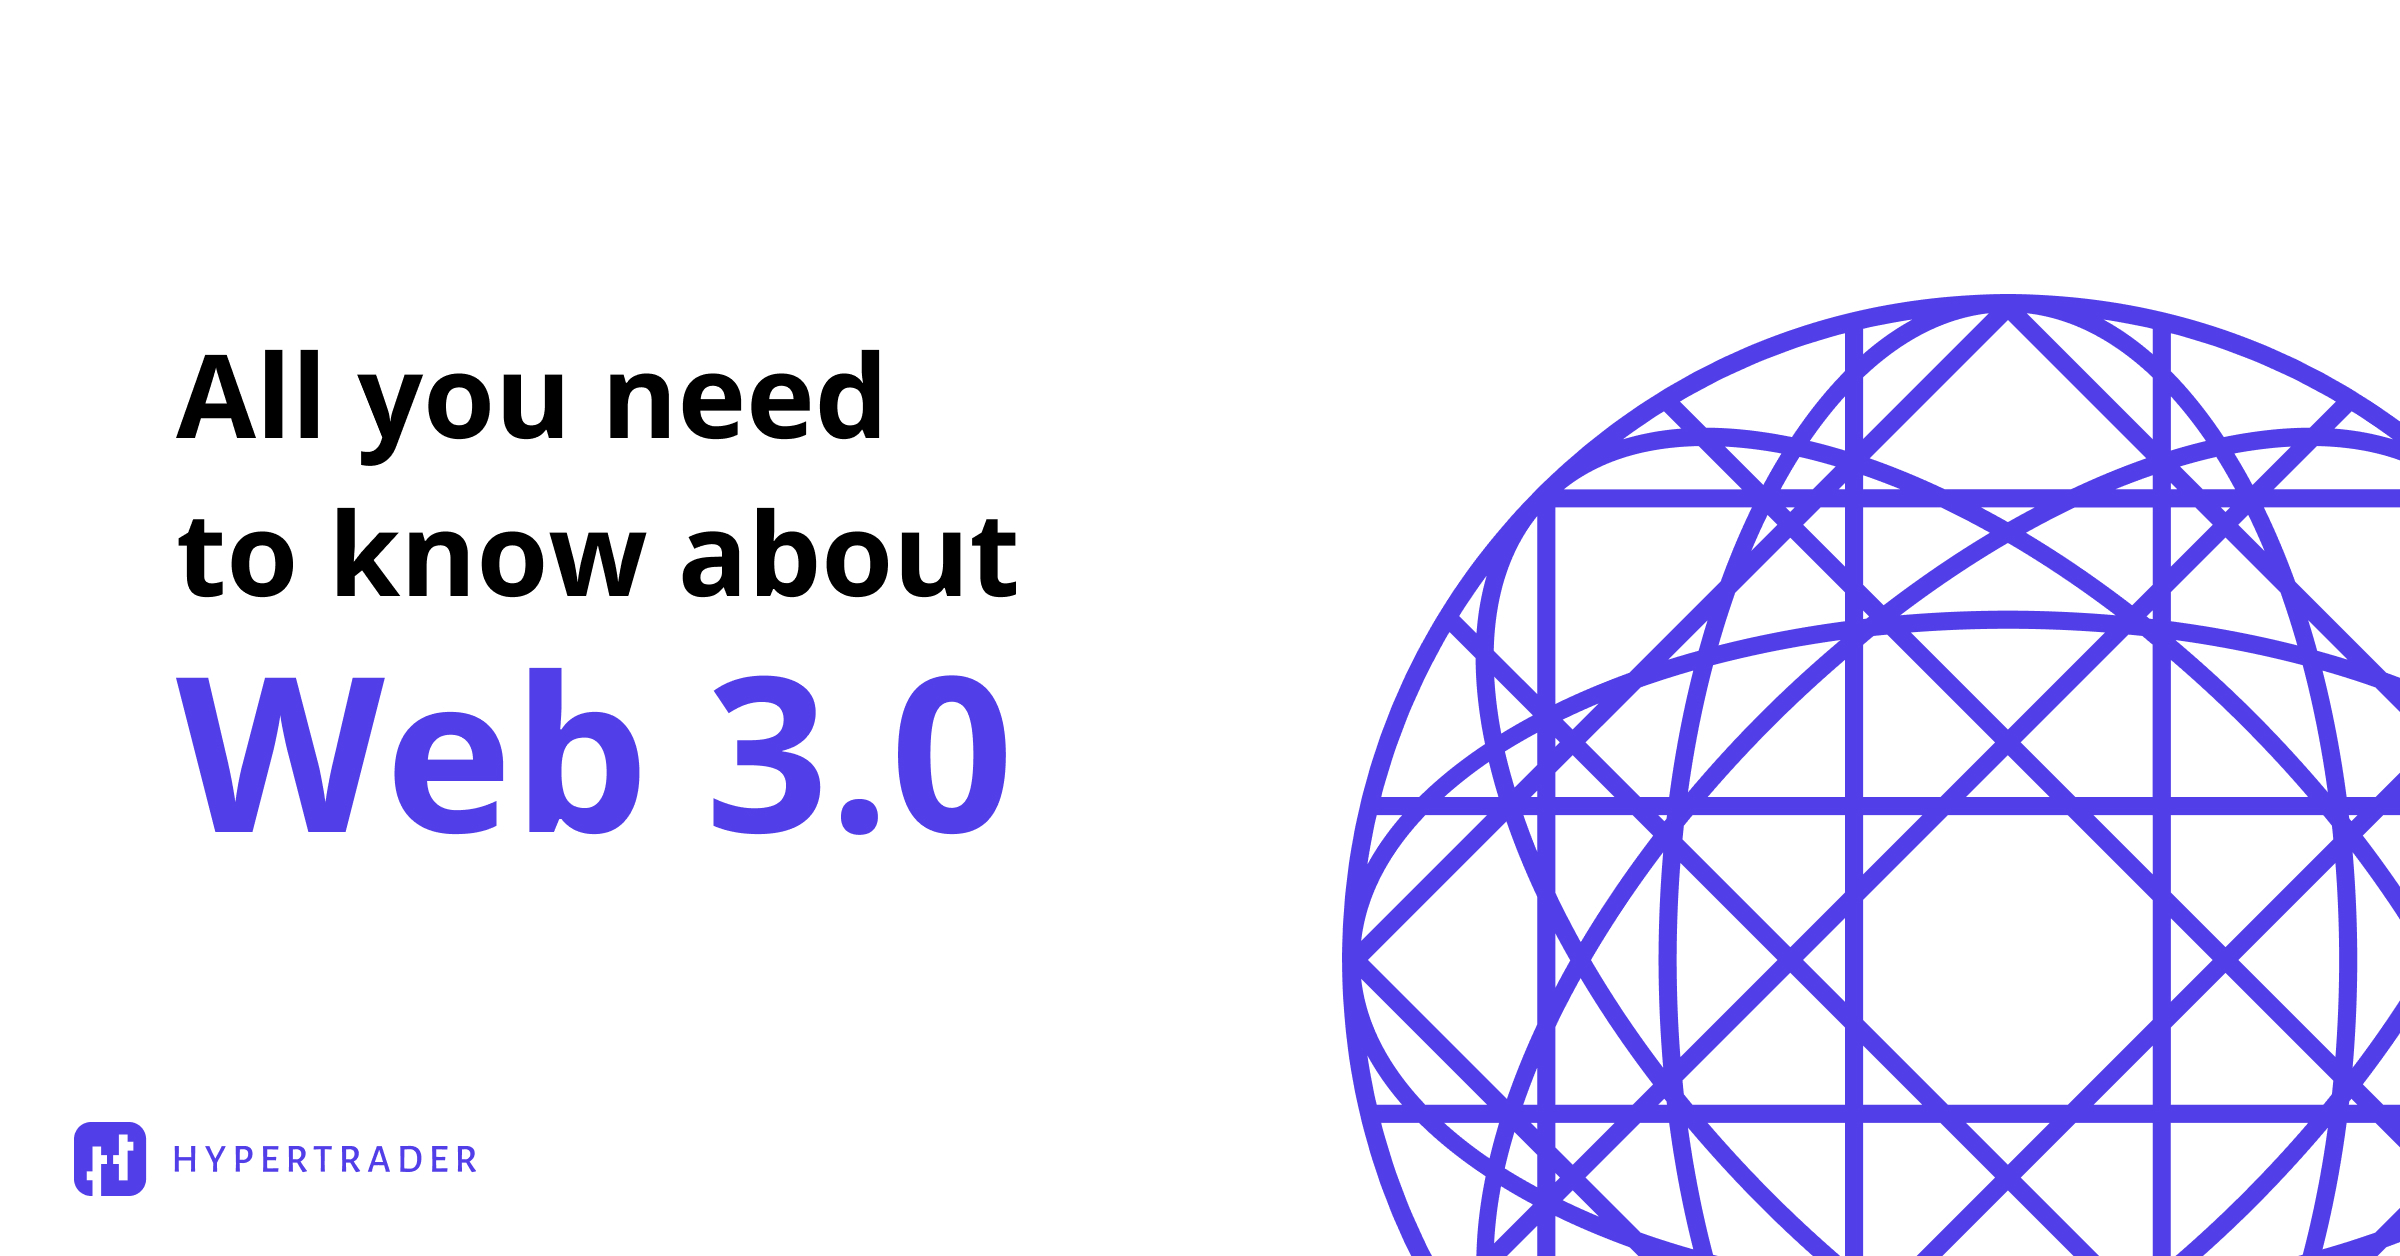 All You Need to Know About Web 3.0